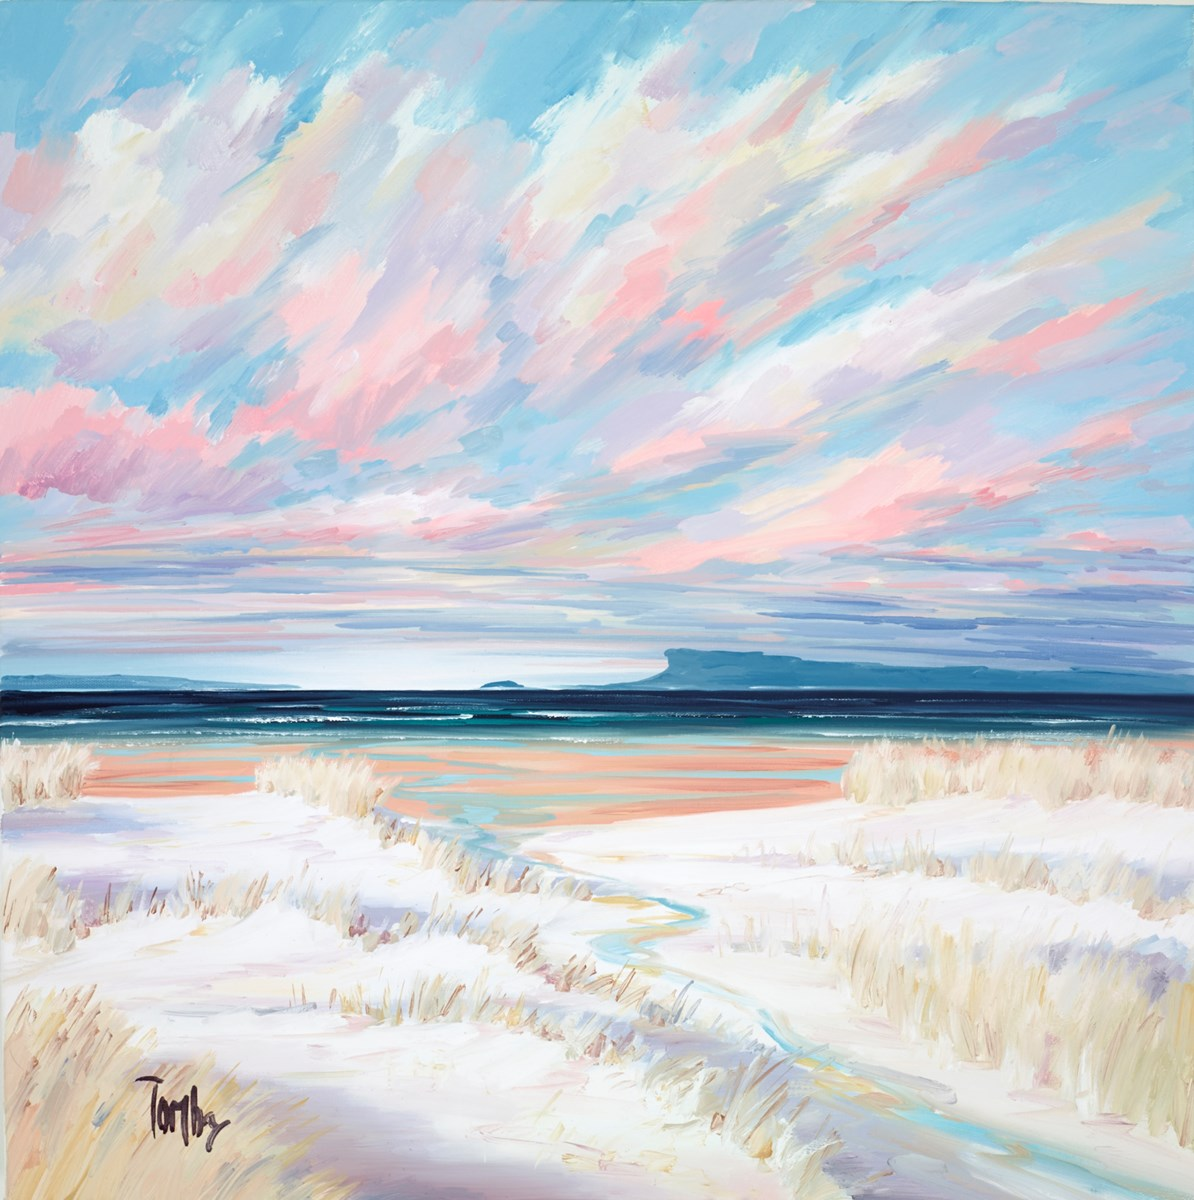 Arisaig Sands VI by tom barron -  sized 23x24 inches. Available from Whitewall Galleries